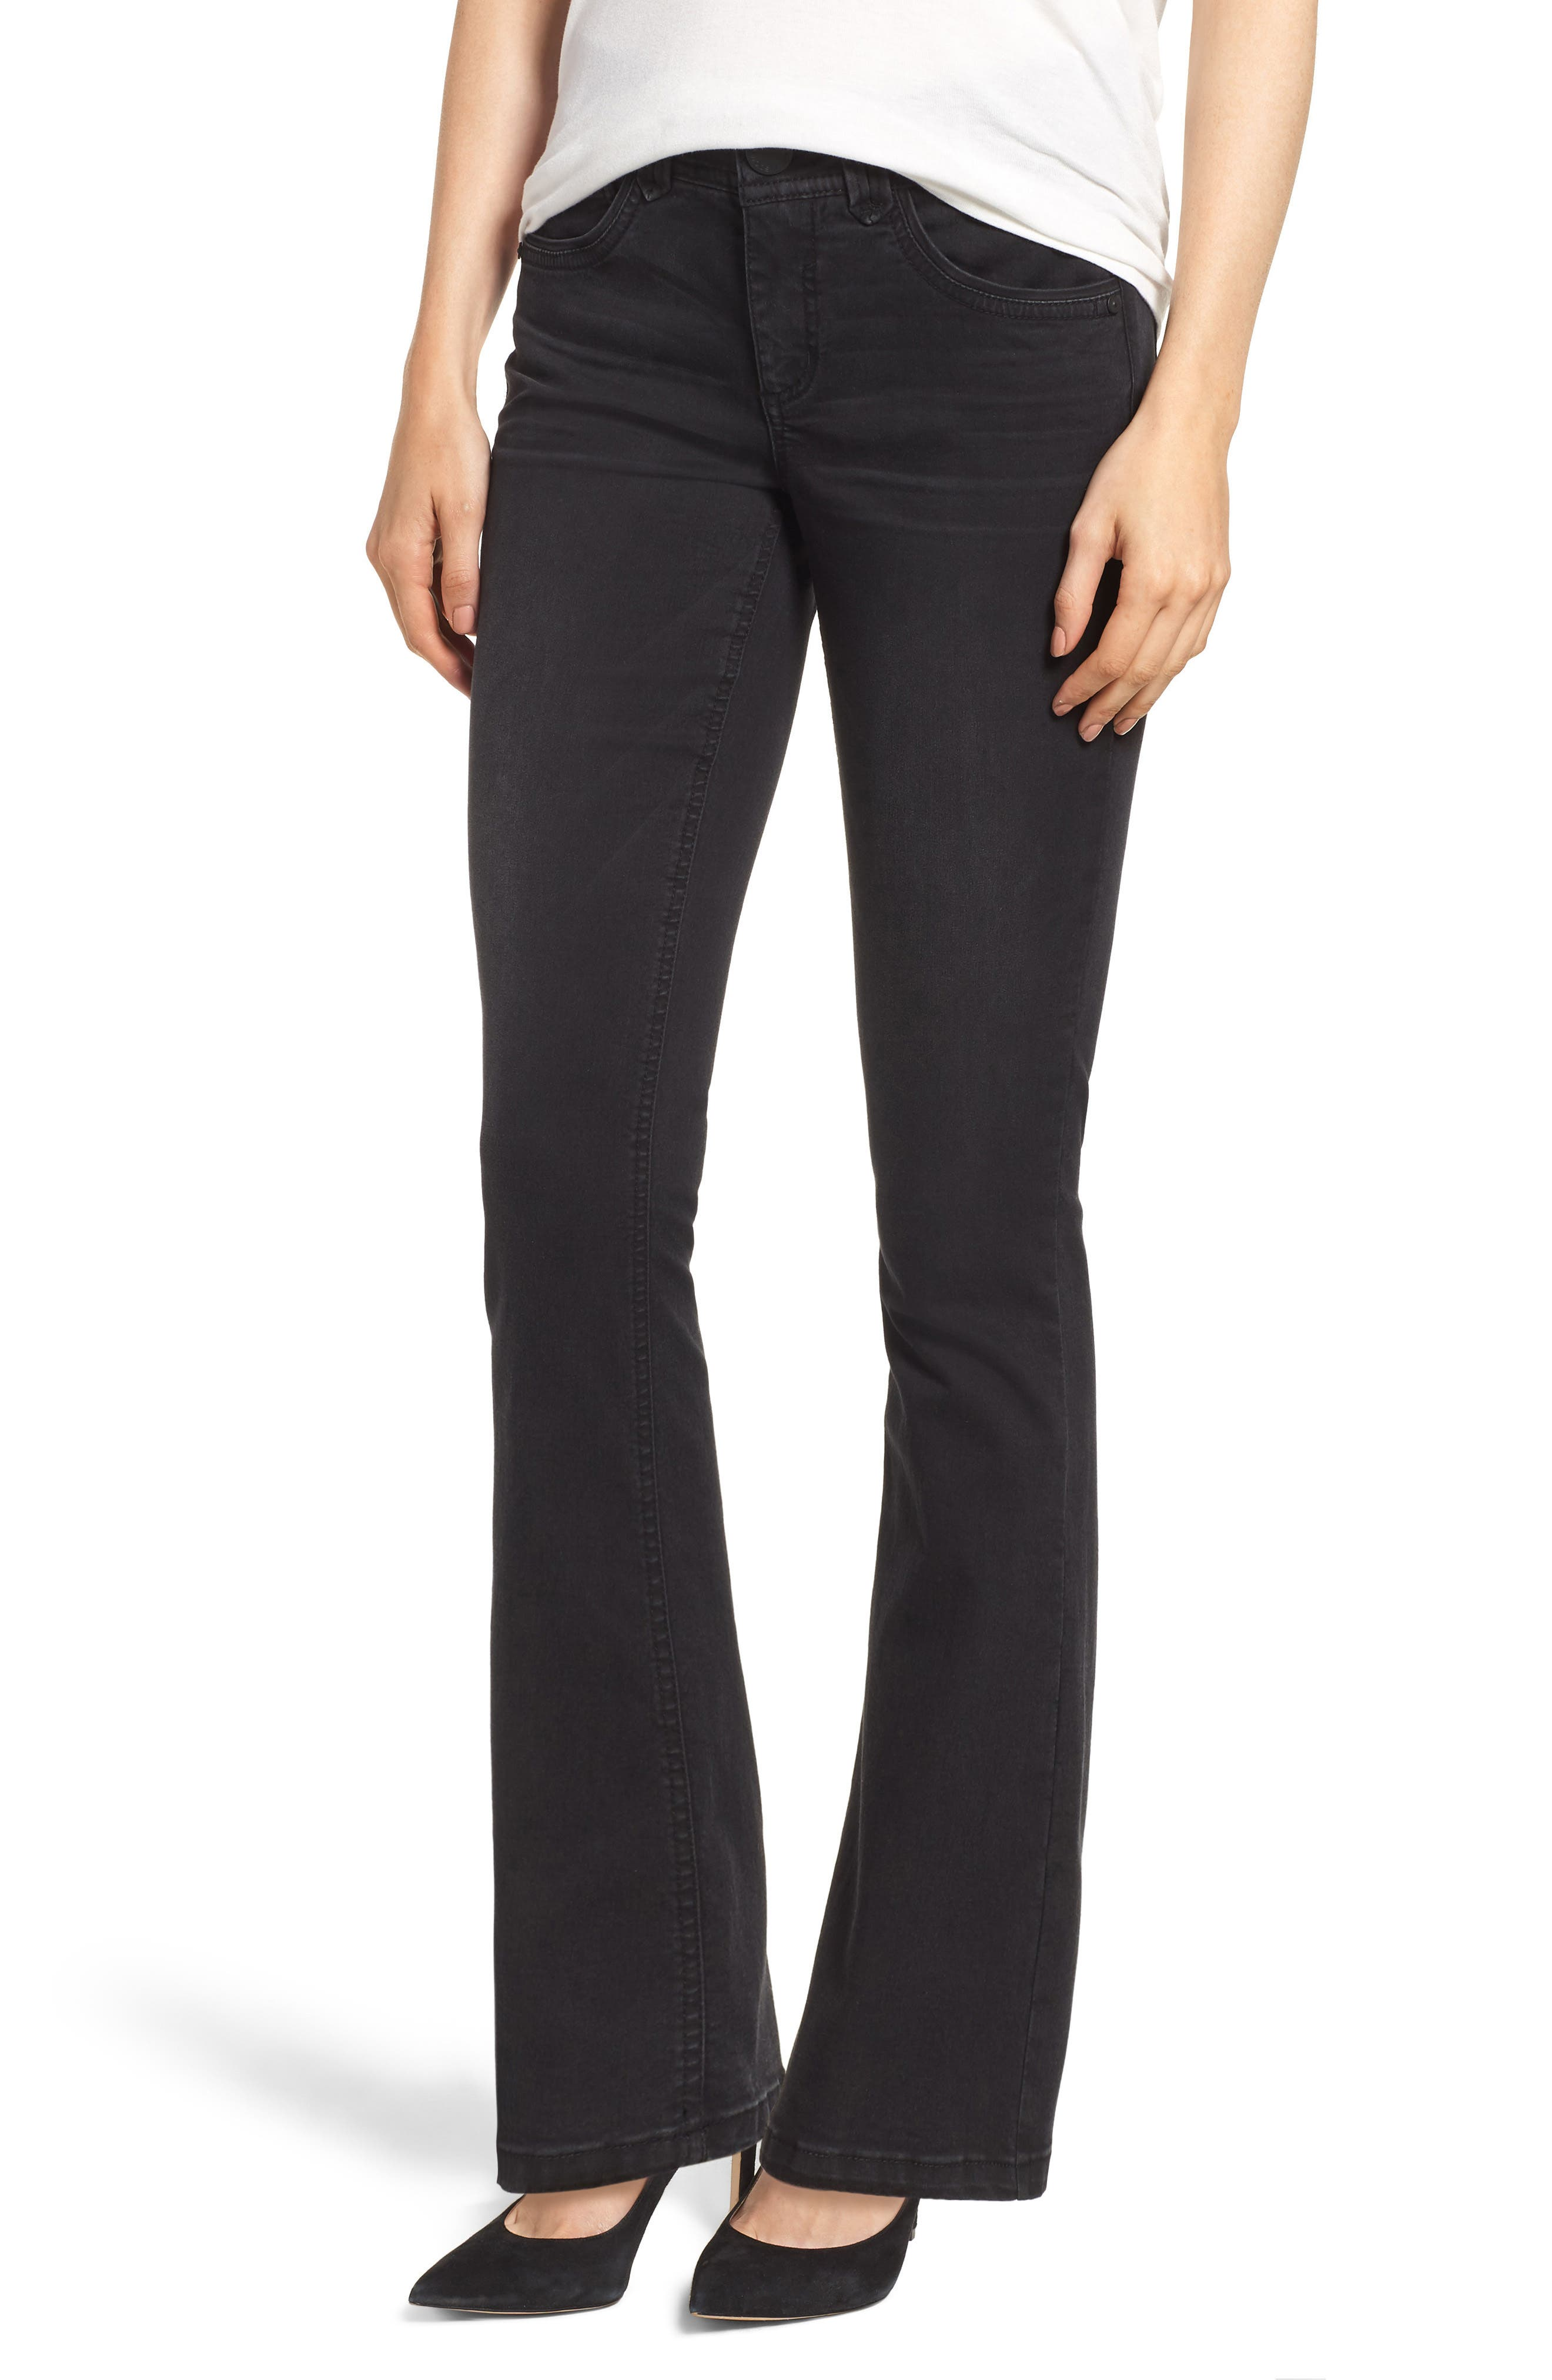 Ab-solution Itty Bitty Bootcut Jeans,                             Main thumbnail 1, color,                             001